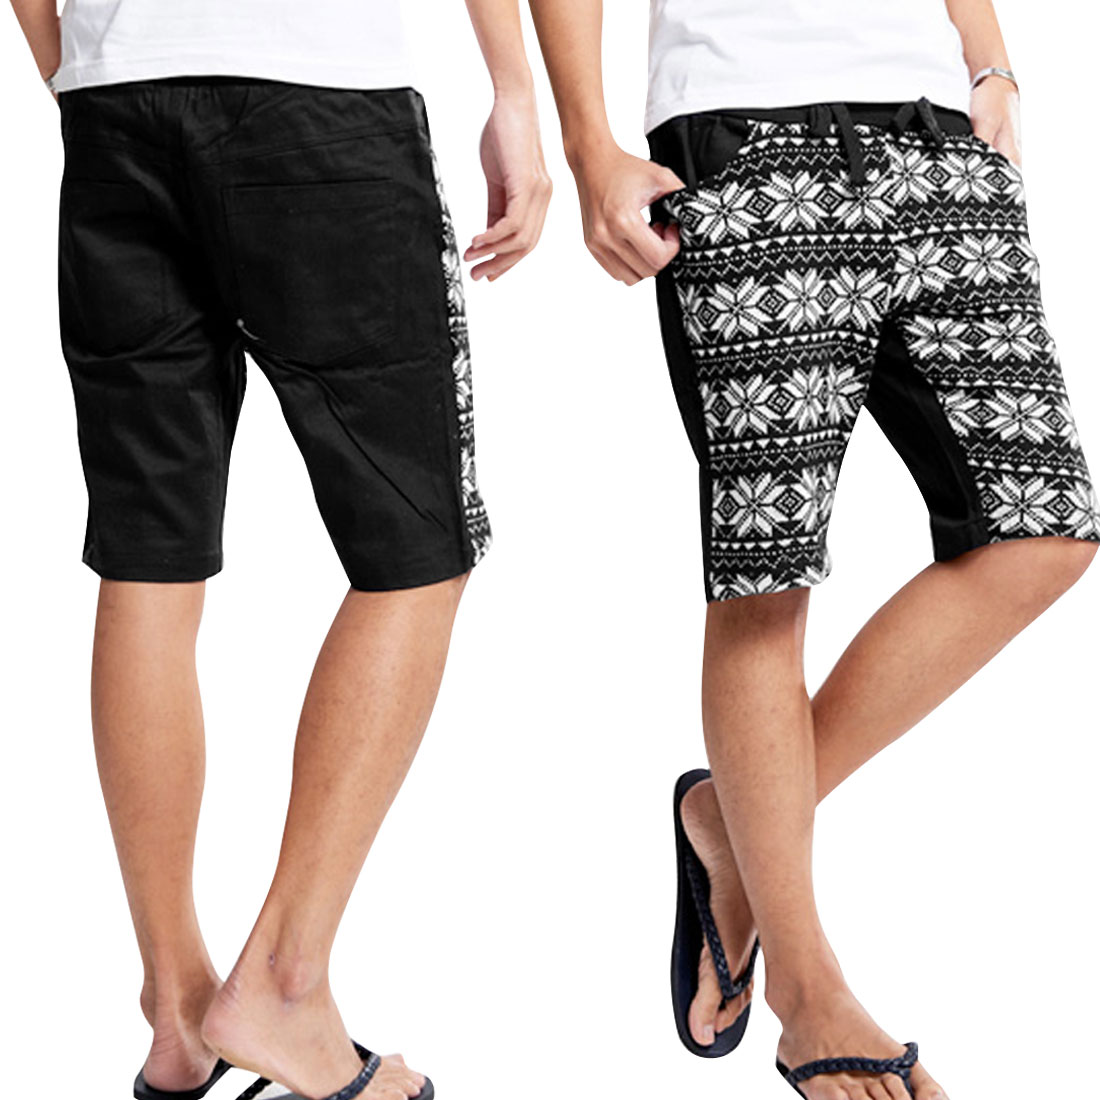 Men Stretchy Strap Waist Floral Prints Knit Splice Design Black White Shorts W29